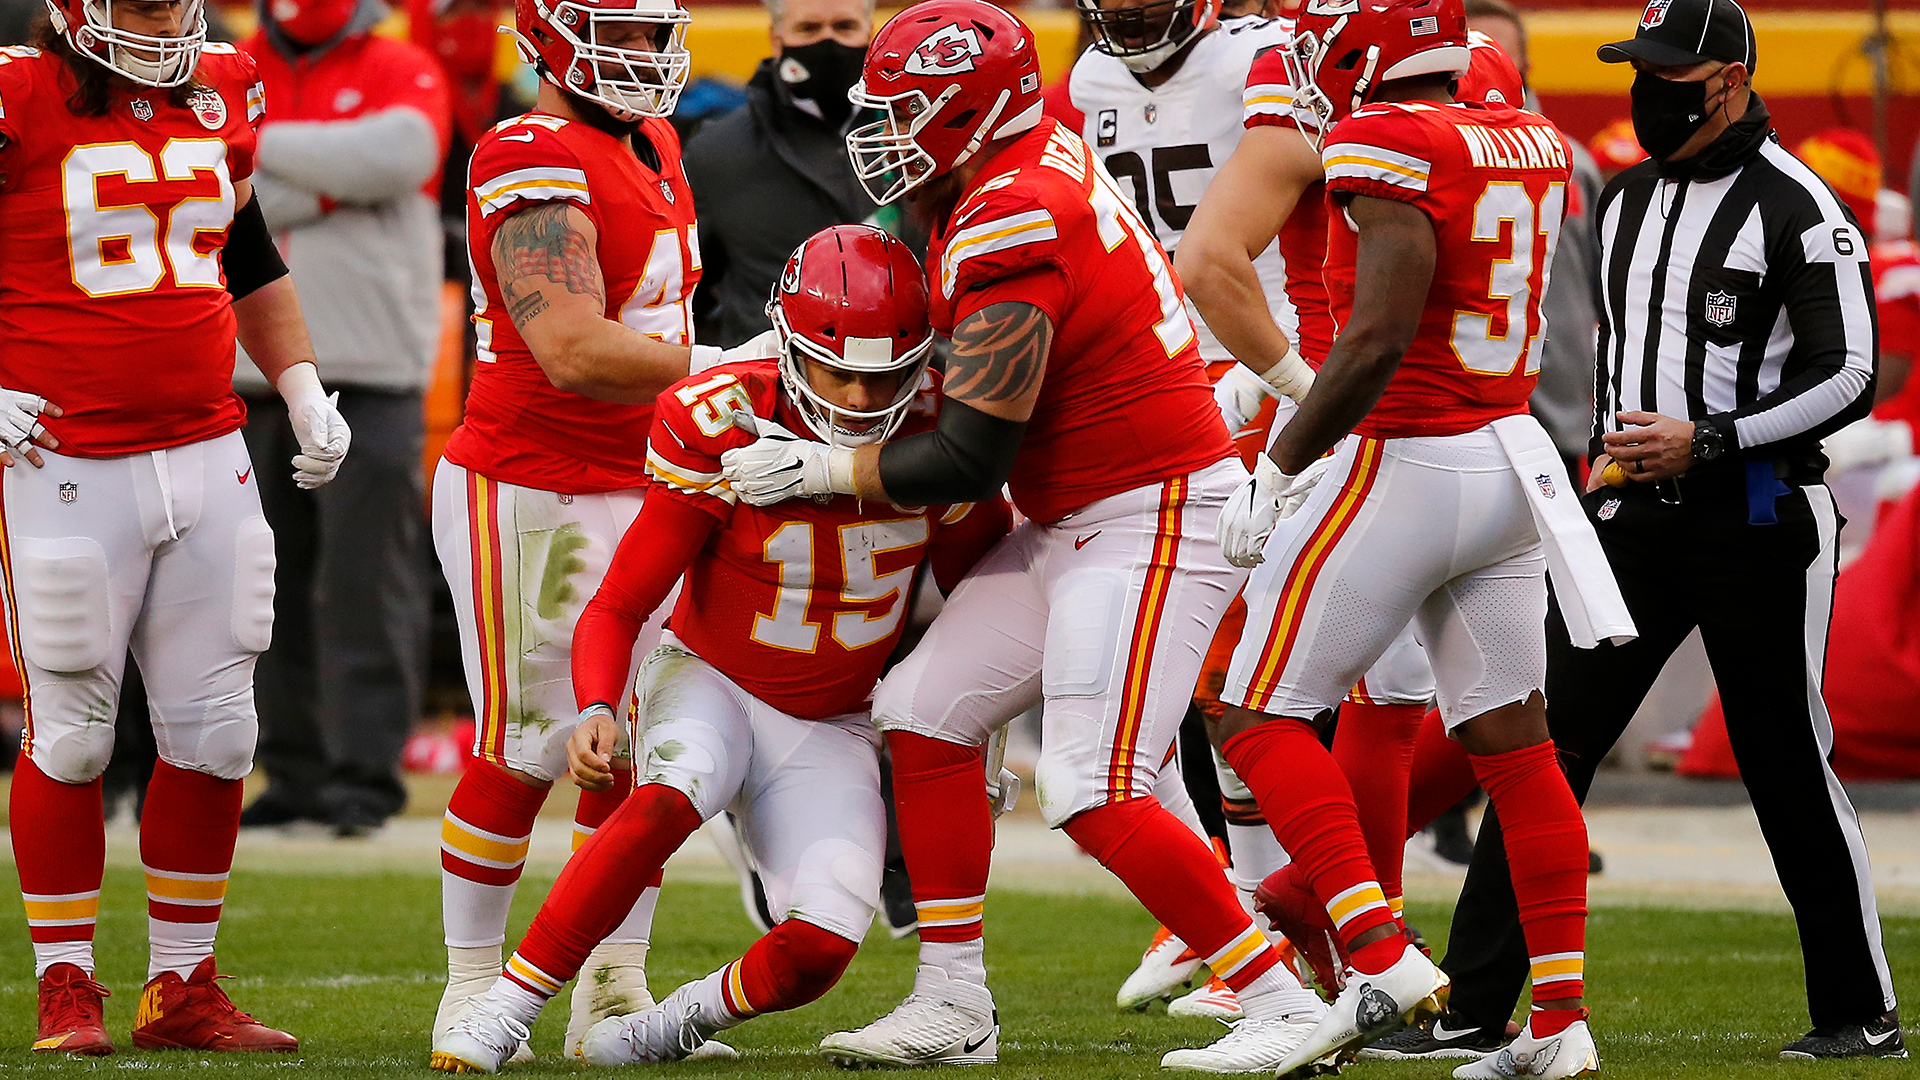 Patrick Mahomes' mom was not pleased with hit that injured QB: 'Trash football'